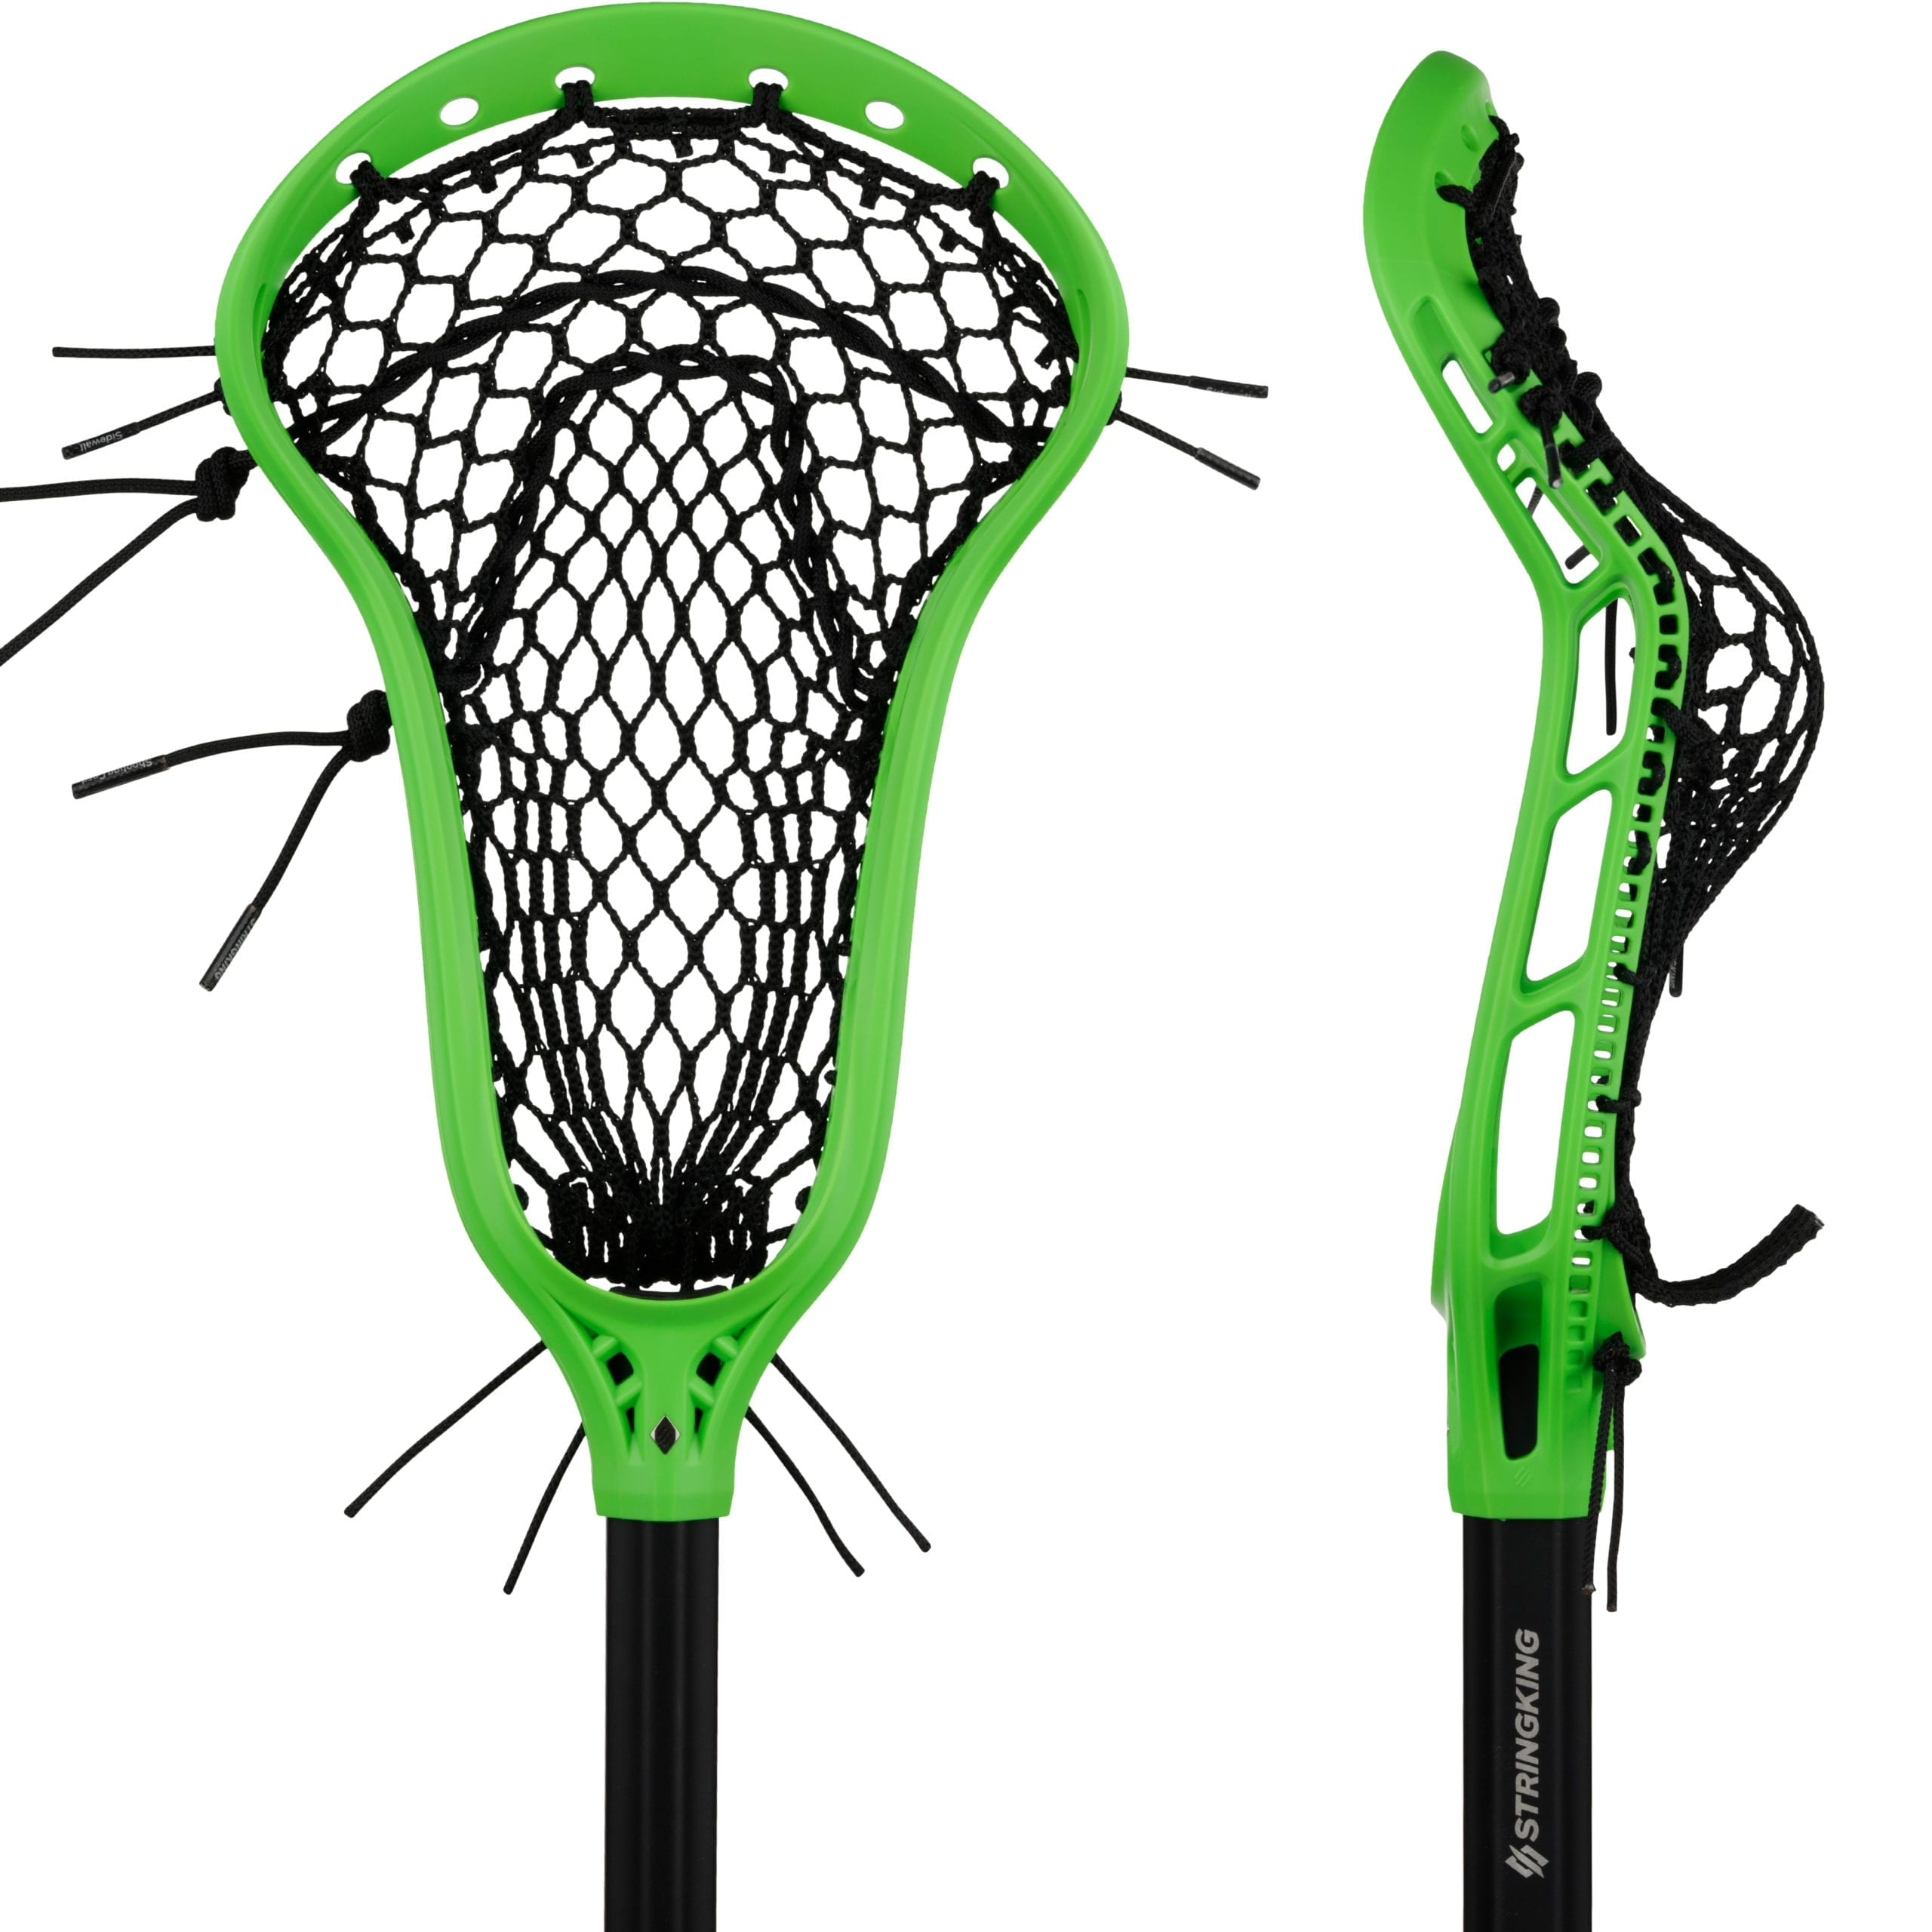 StringKing-Womens-Complete-2-Pro-Midfield-Headstrong-Lacrosse-Stick-Double-scaled-1.jpg